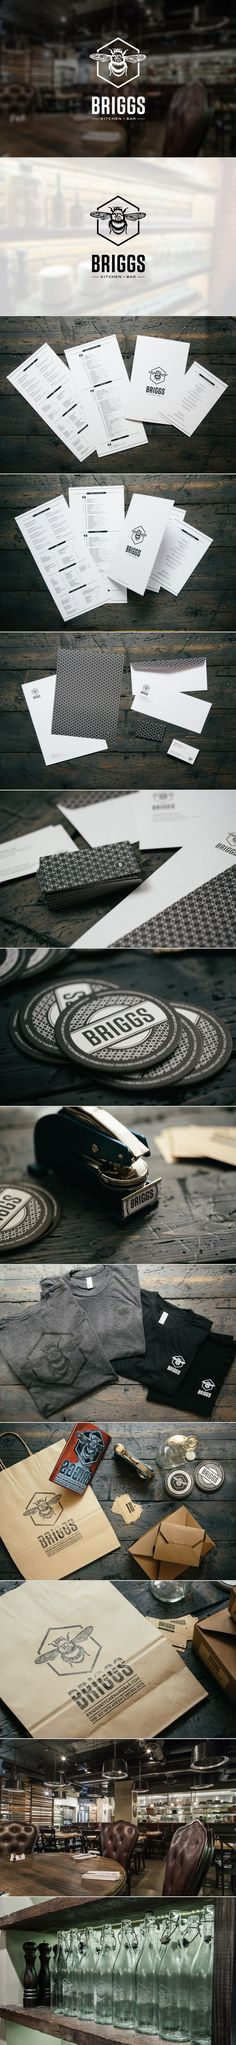 Briggs Kitchen + Bar Branding by Joey Camacho, via Behance